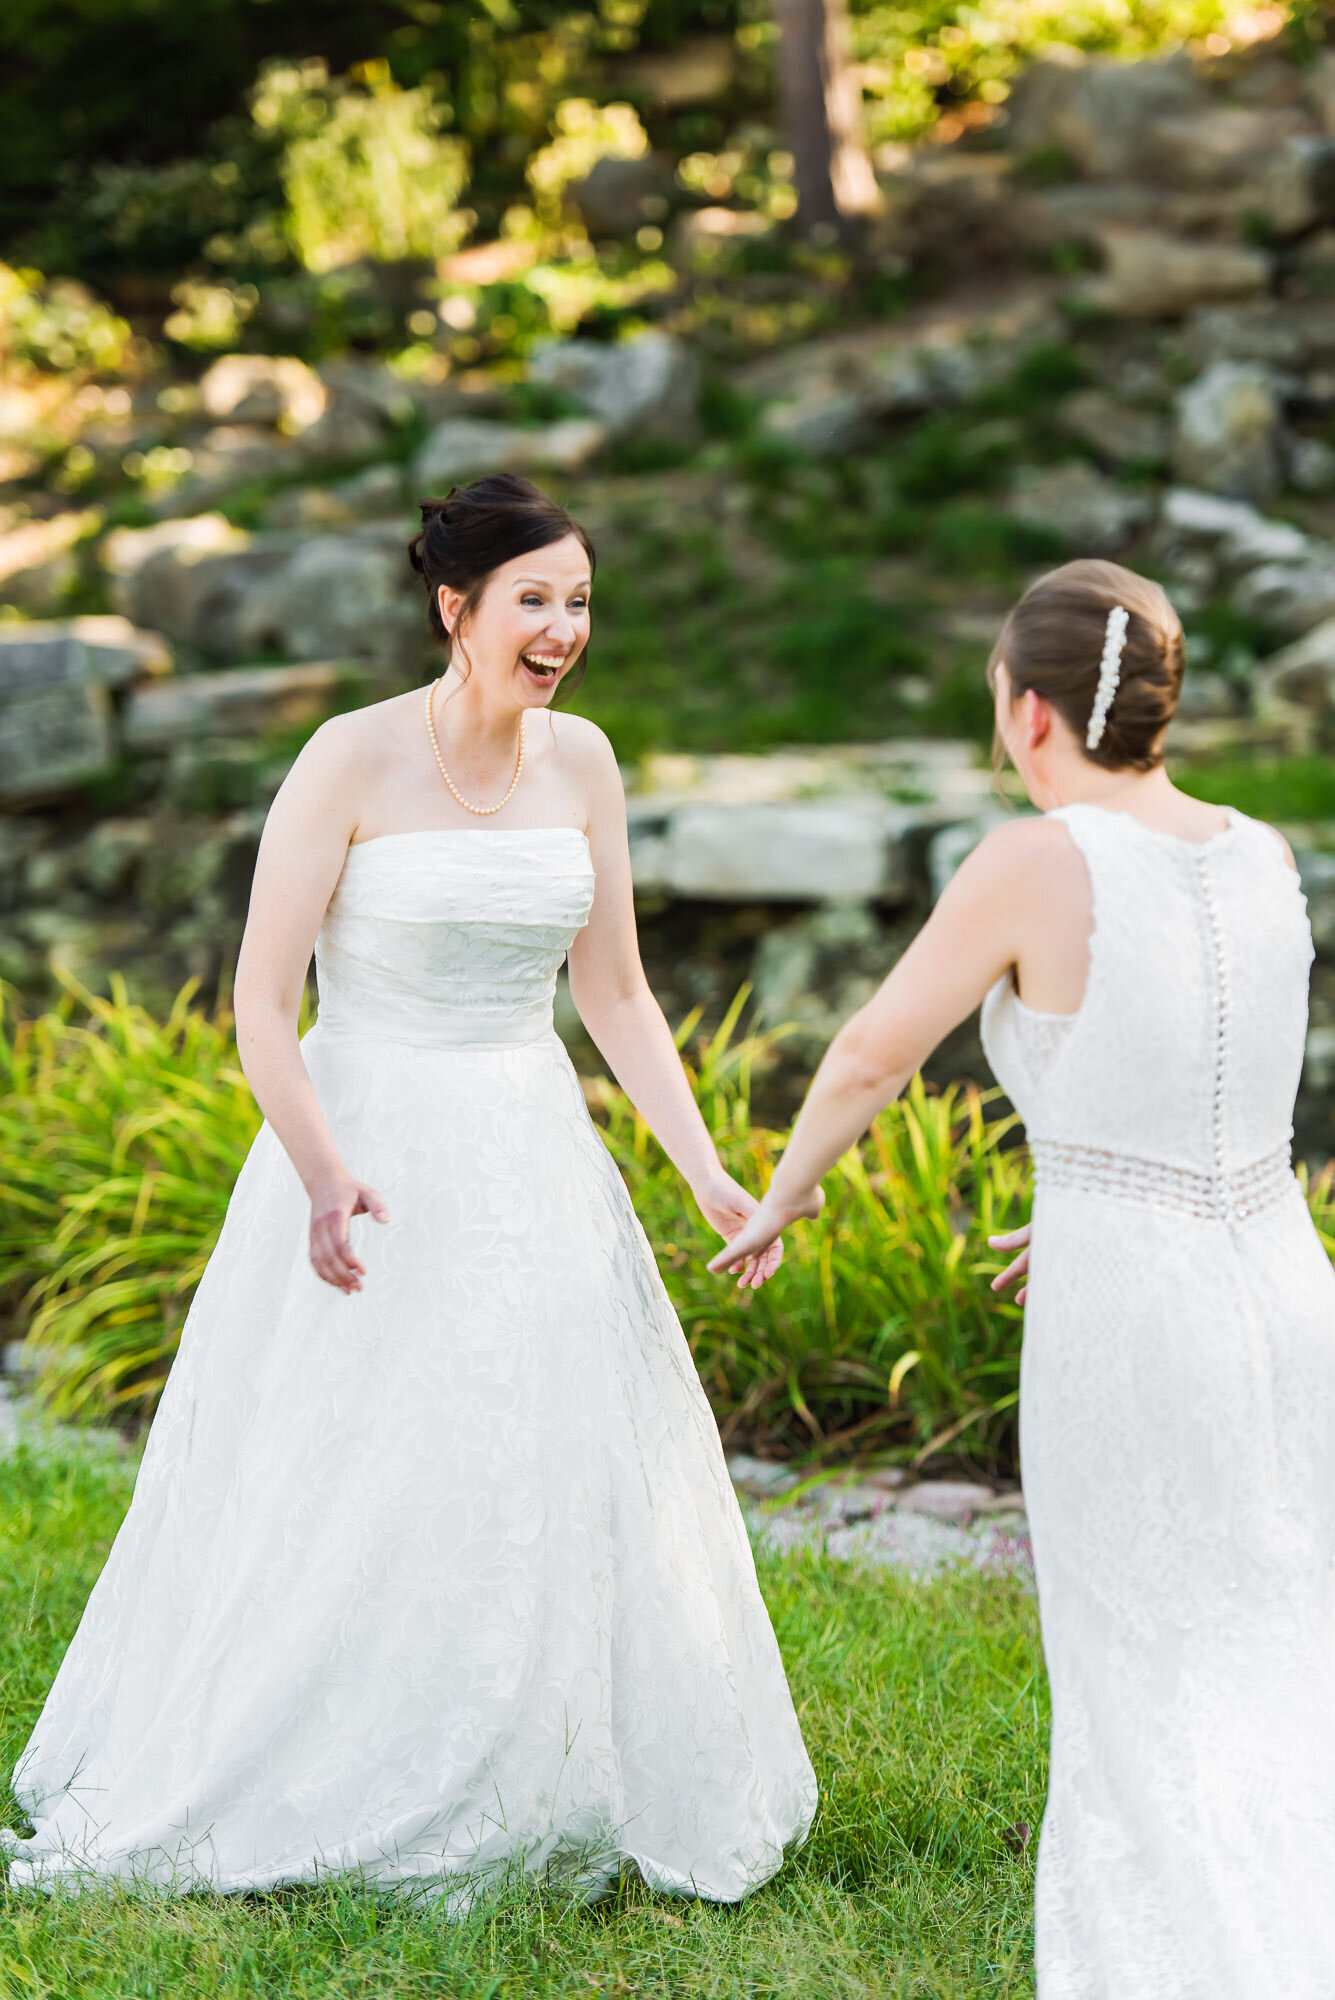 Excited brides see each other for the first time before their Forest Park Wedding